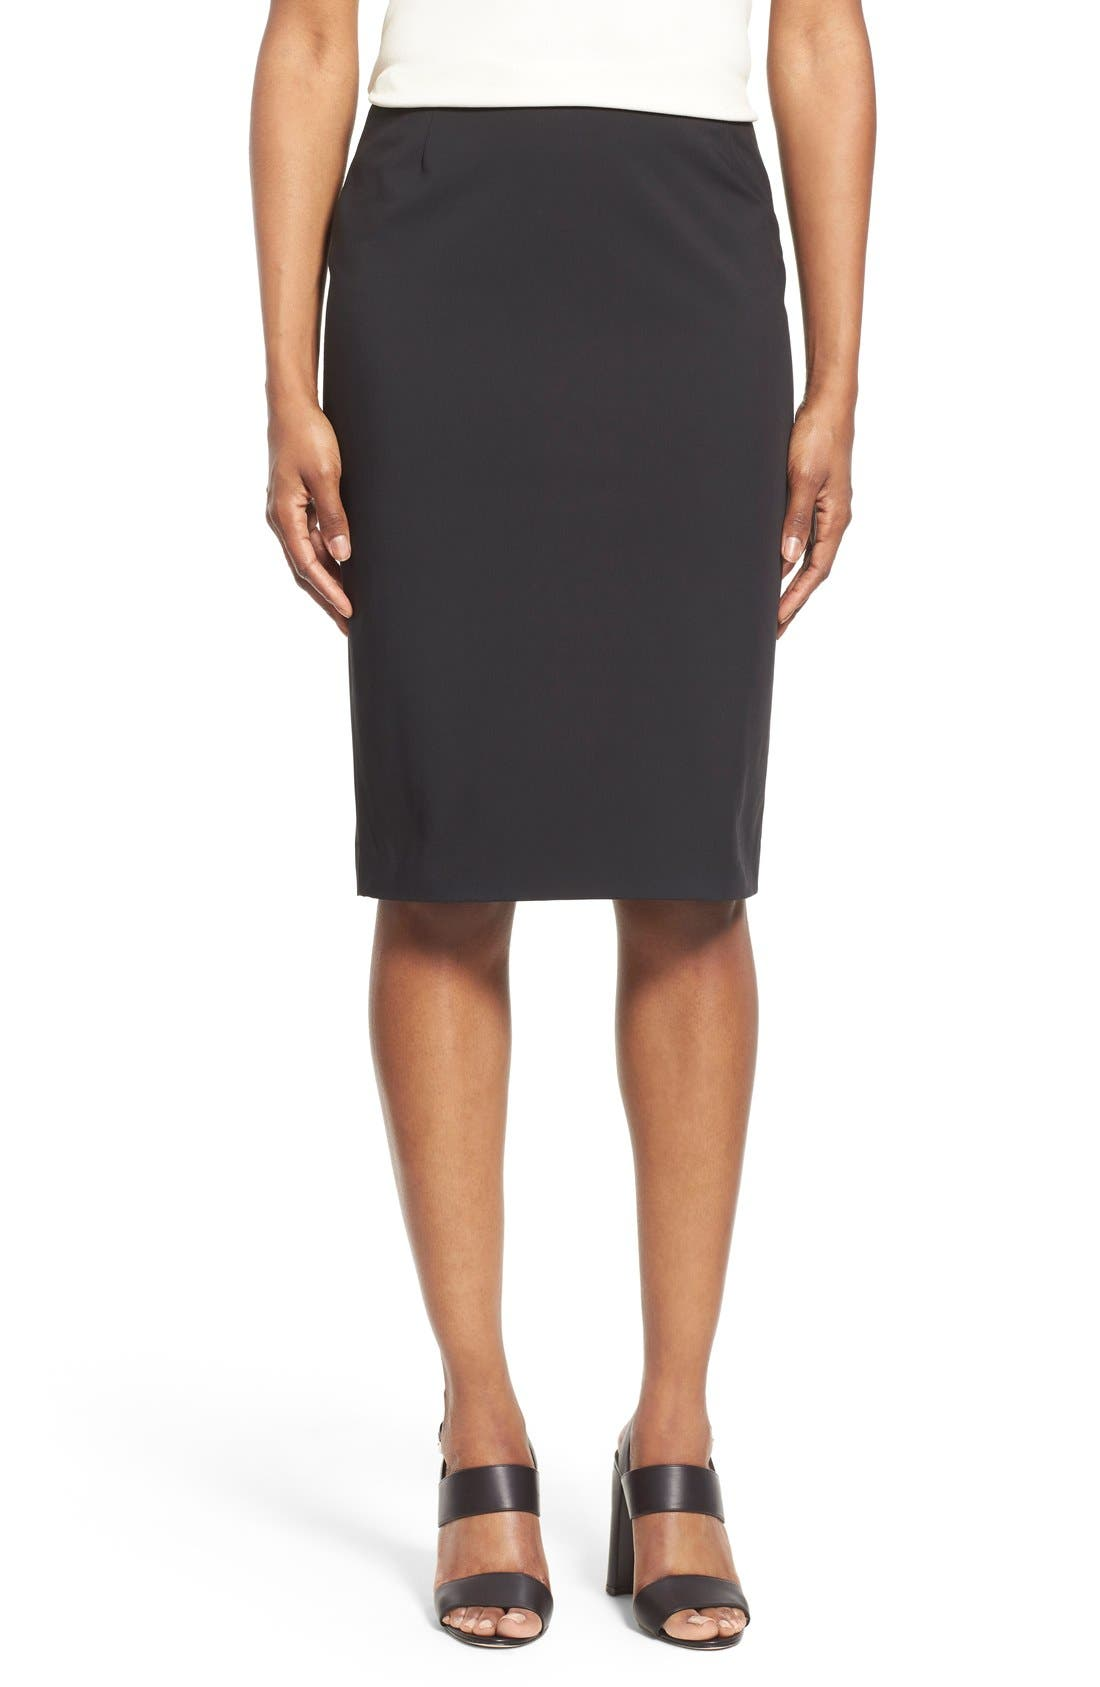 LAFAYETTE 148 NEW YORK Pencil Skirt